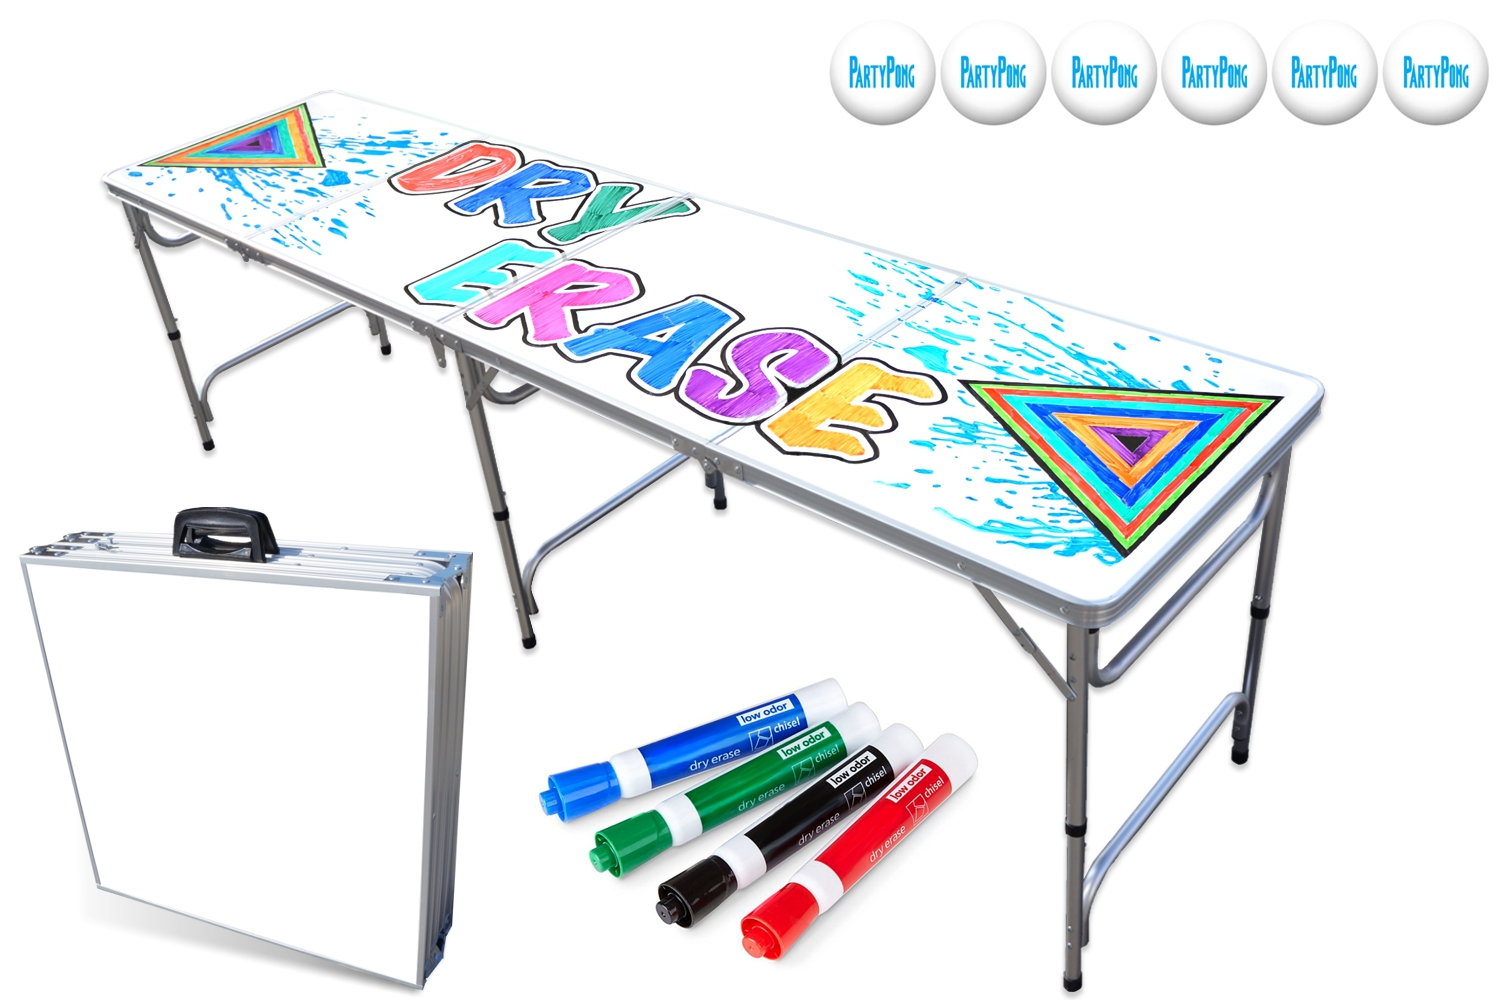 8' folding beer pong tables - Party Pong has been the #1 selling beer pong table since 2006. Our tables feature dry erase surfaces, LED Lights, Cup Holes, and Custom Full Color Graphics.